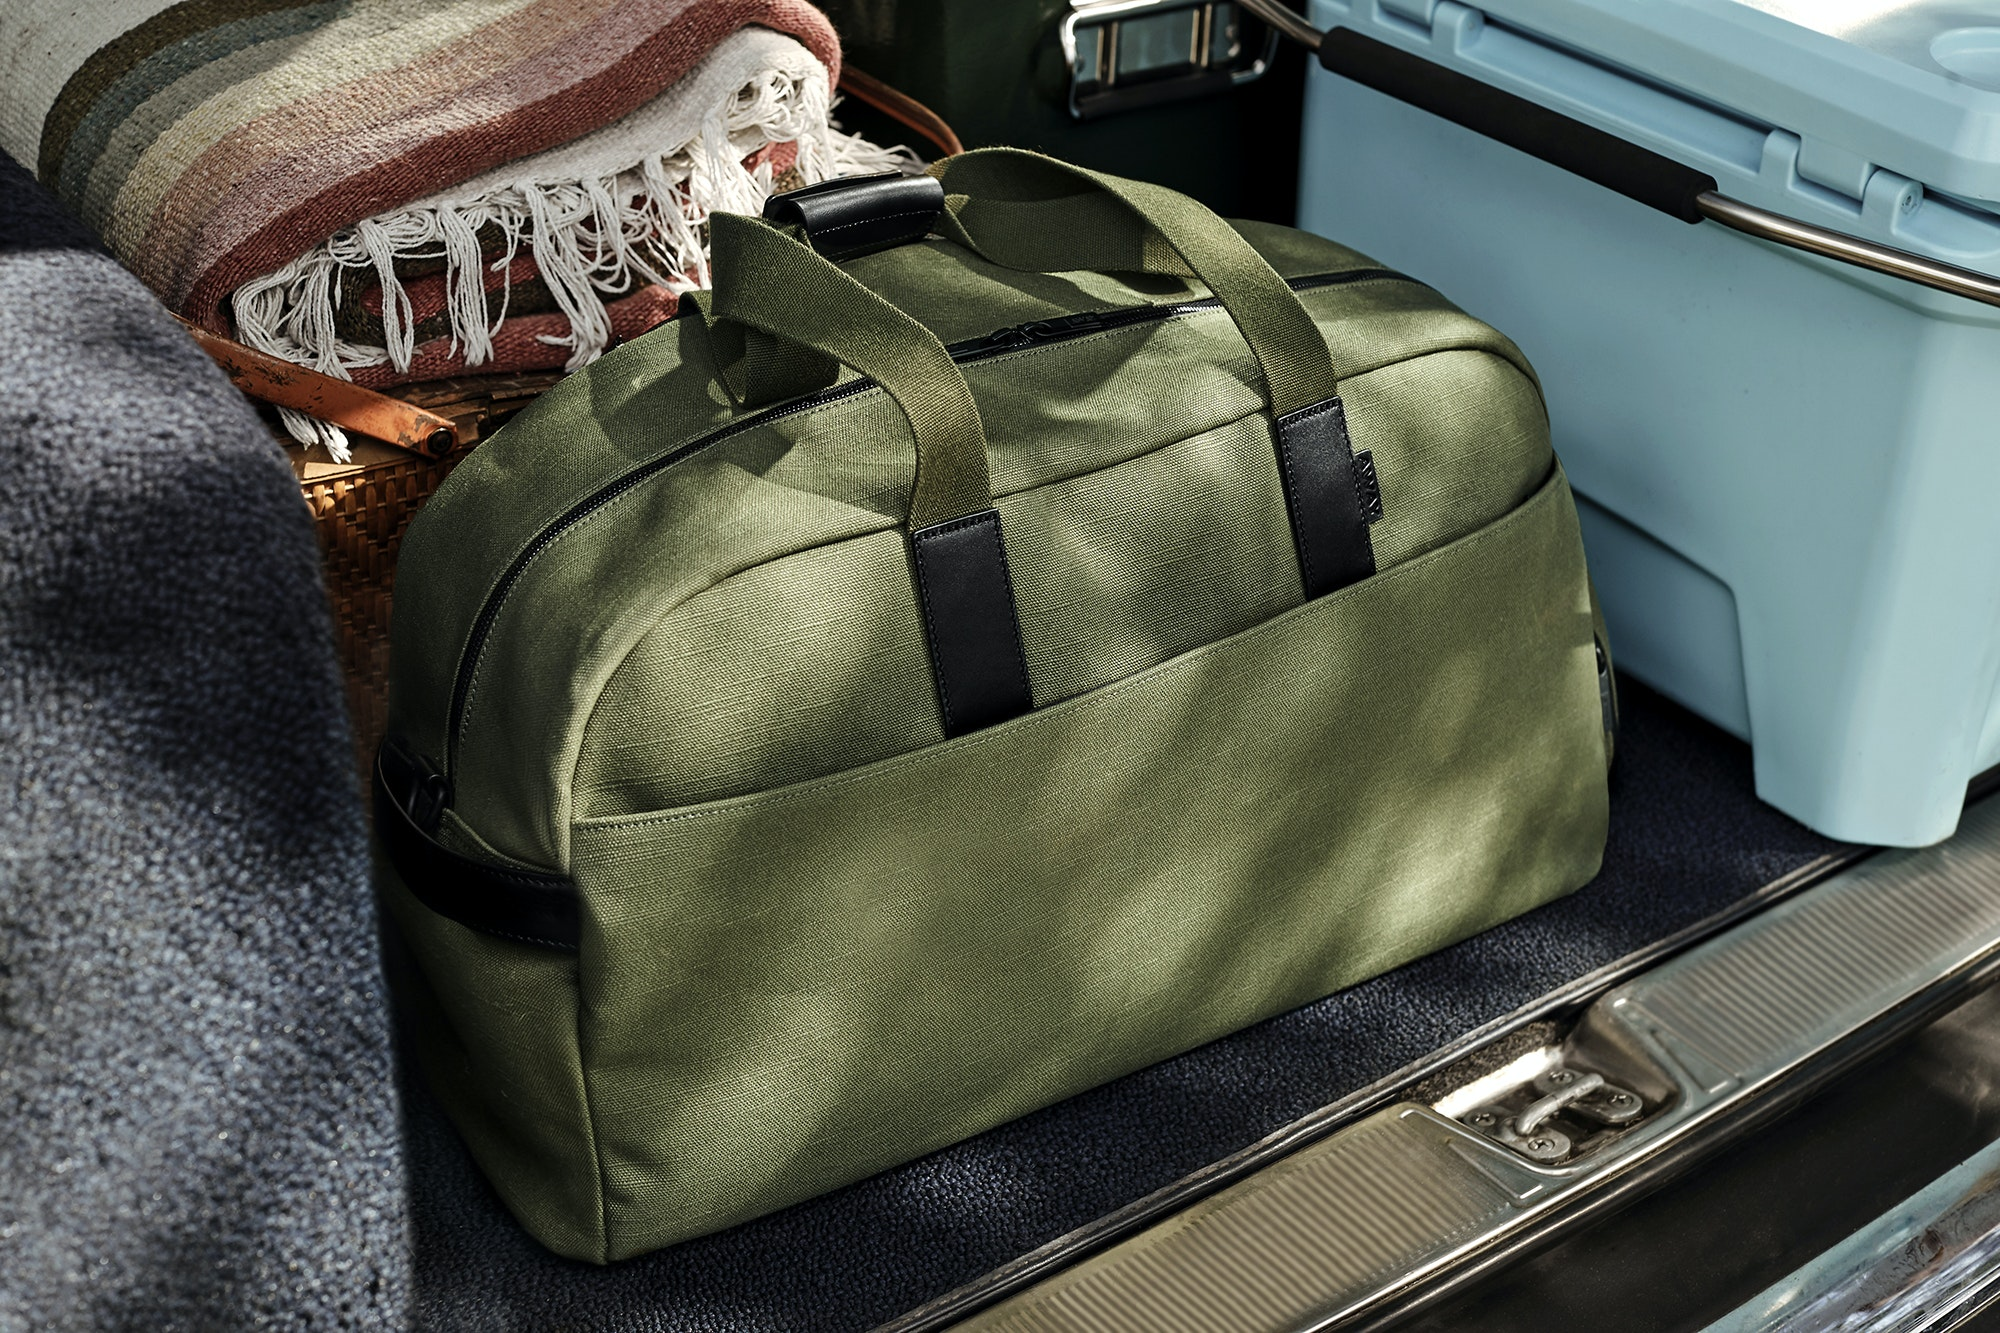 Away's New Weekend Bags Arrive Just in Time for, Well, the Weekend